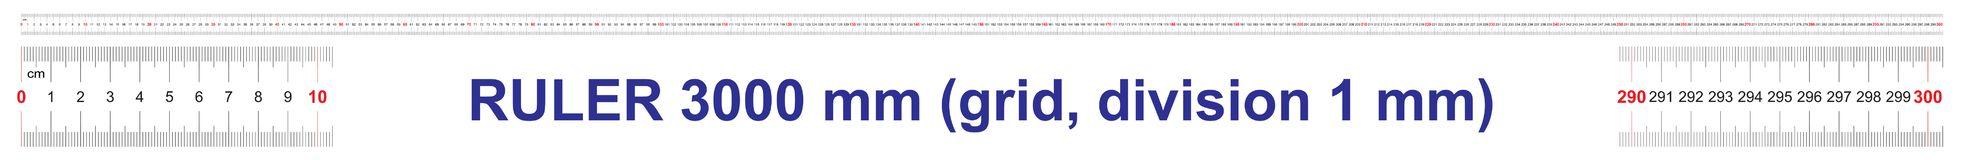 Free Ruler Of 3000 Millimeters. Ruler Of 300 Centimeters. Ruler Of 3 Meters. Calibration Grid. Value Division 1 Mm Stock Photos - 143403983